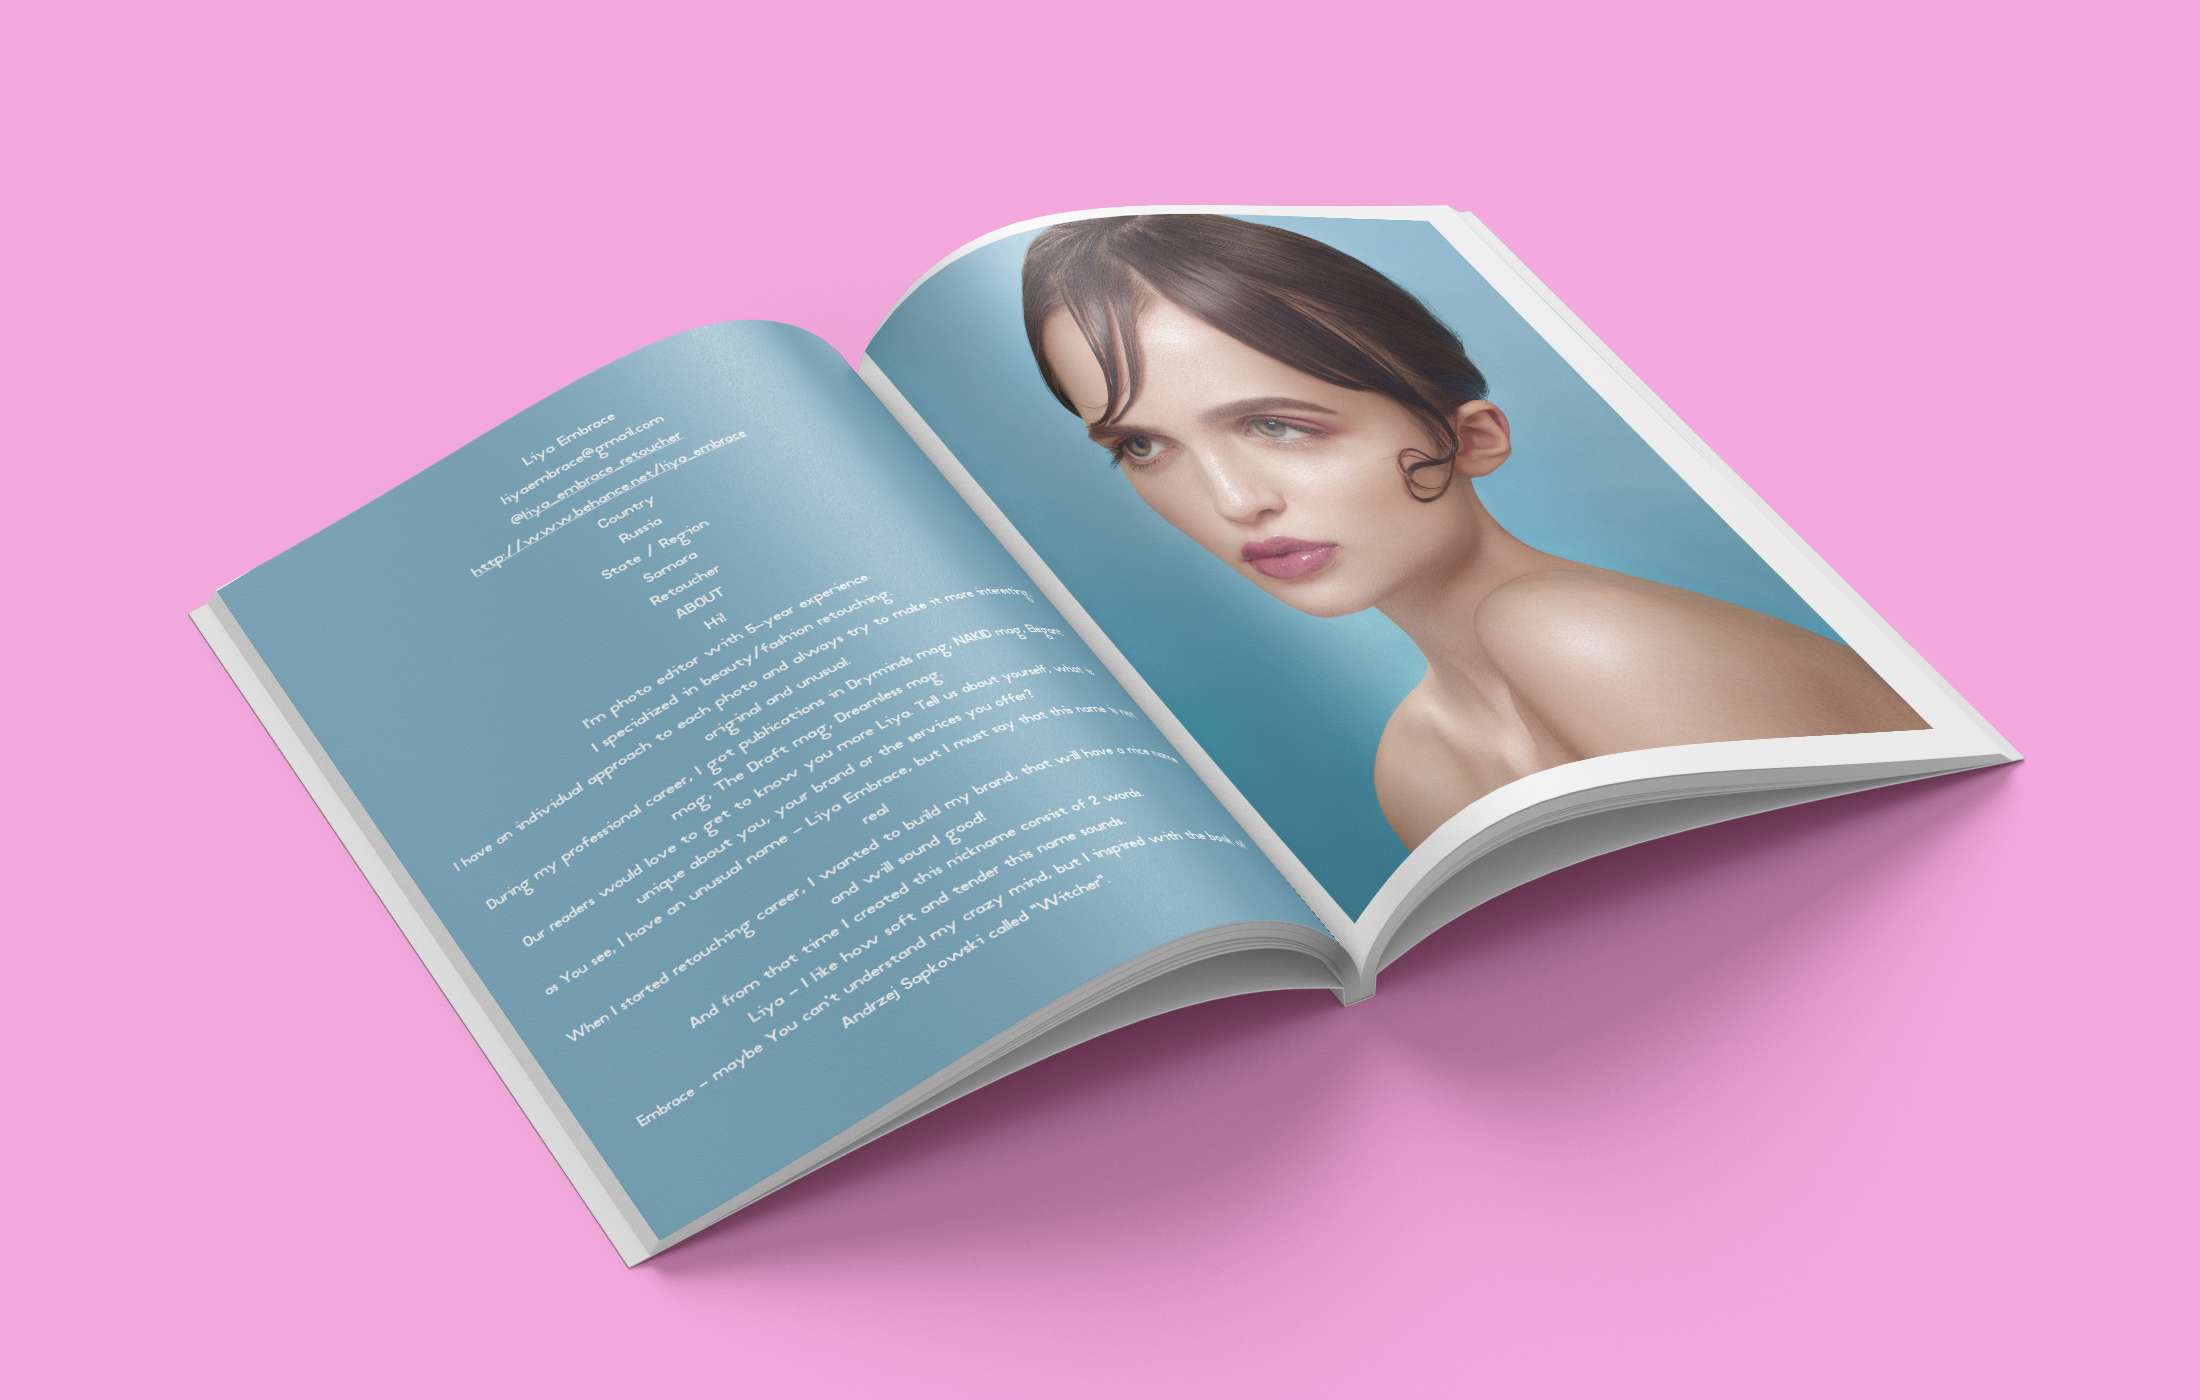 the-best-of-model-citizen-magazine-by-macky-suson-the-most-inclusive-fashion-magazine-86.png